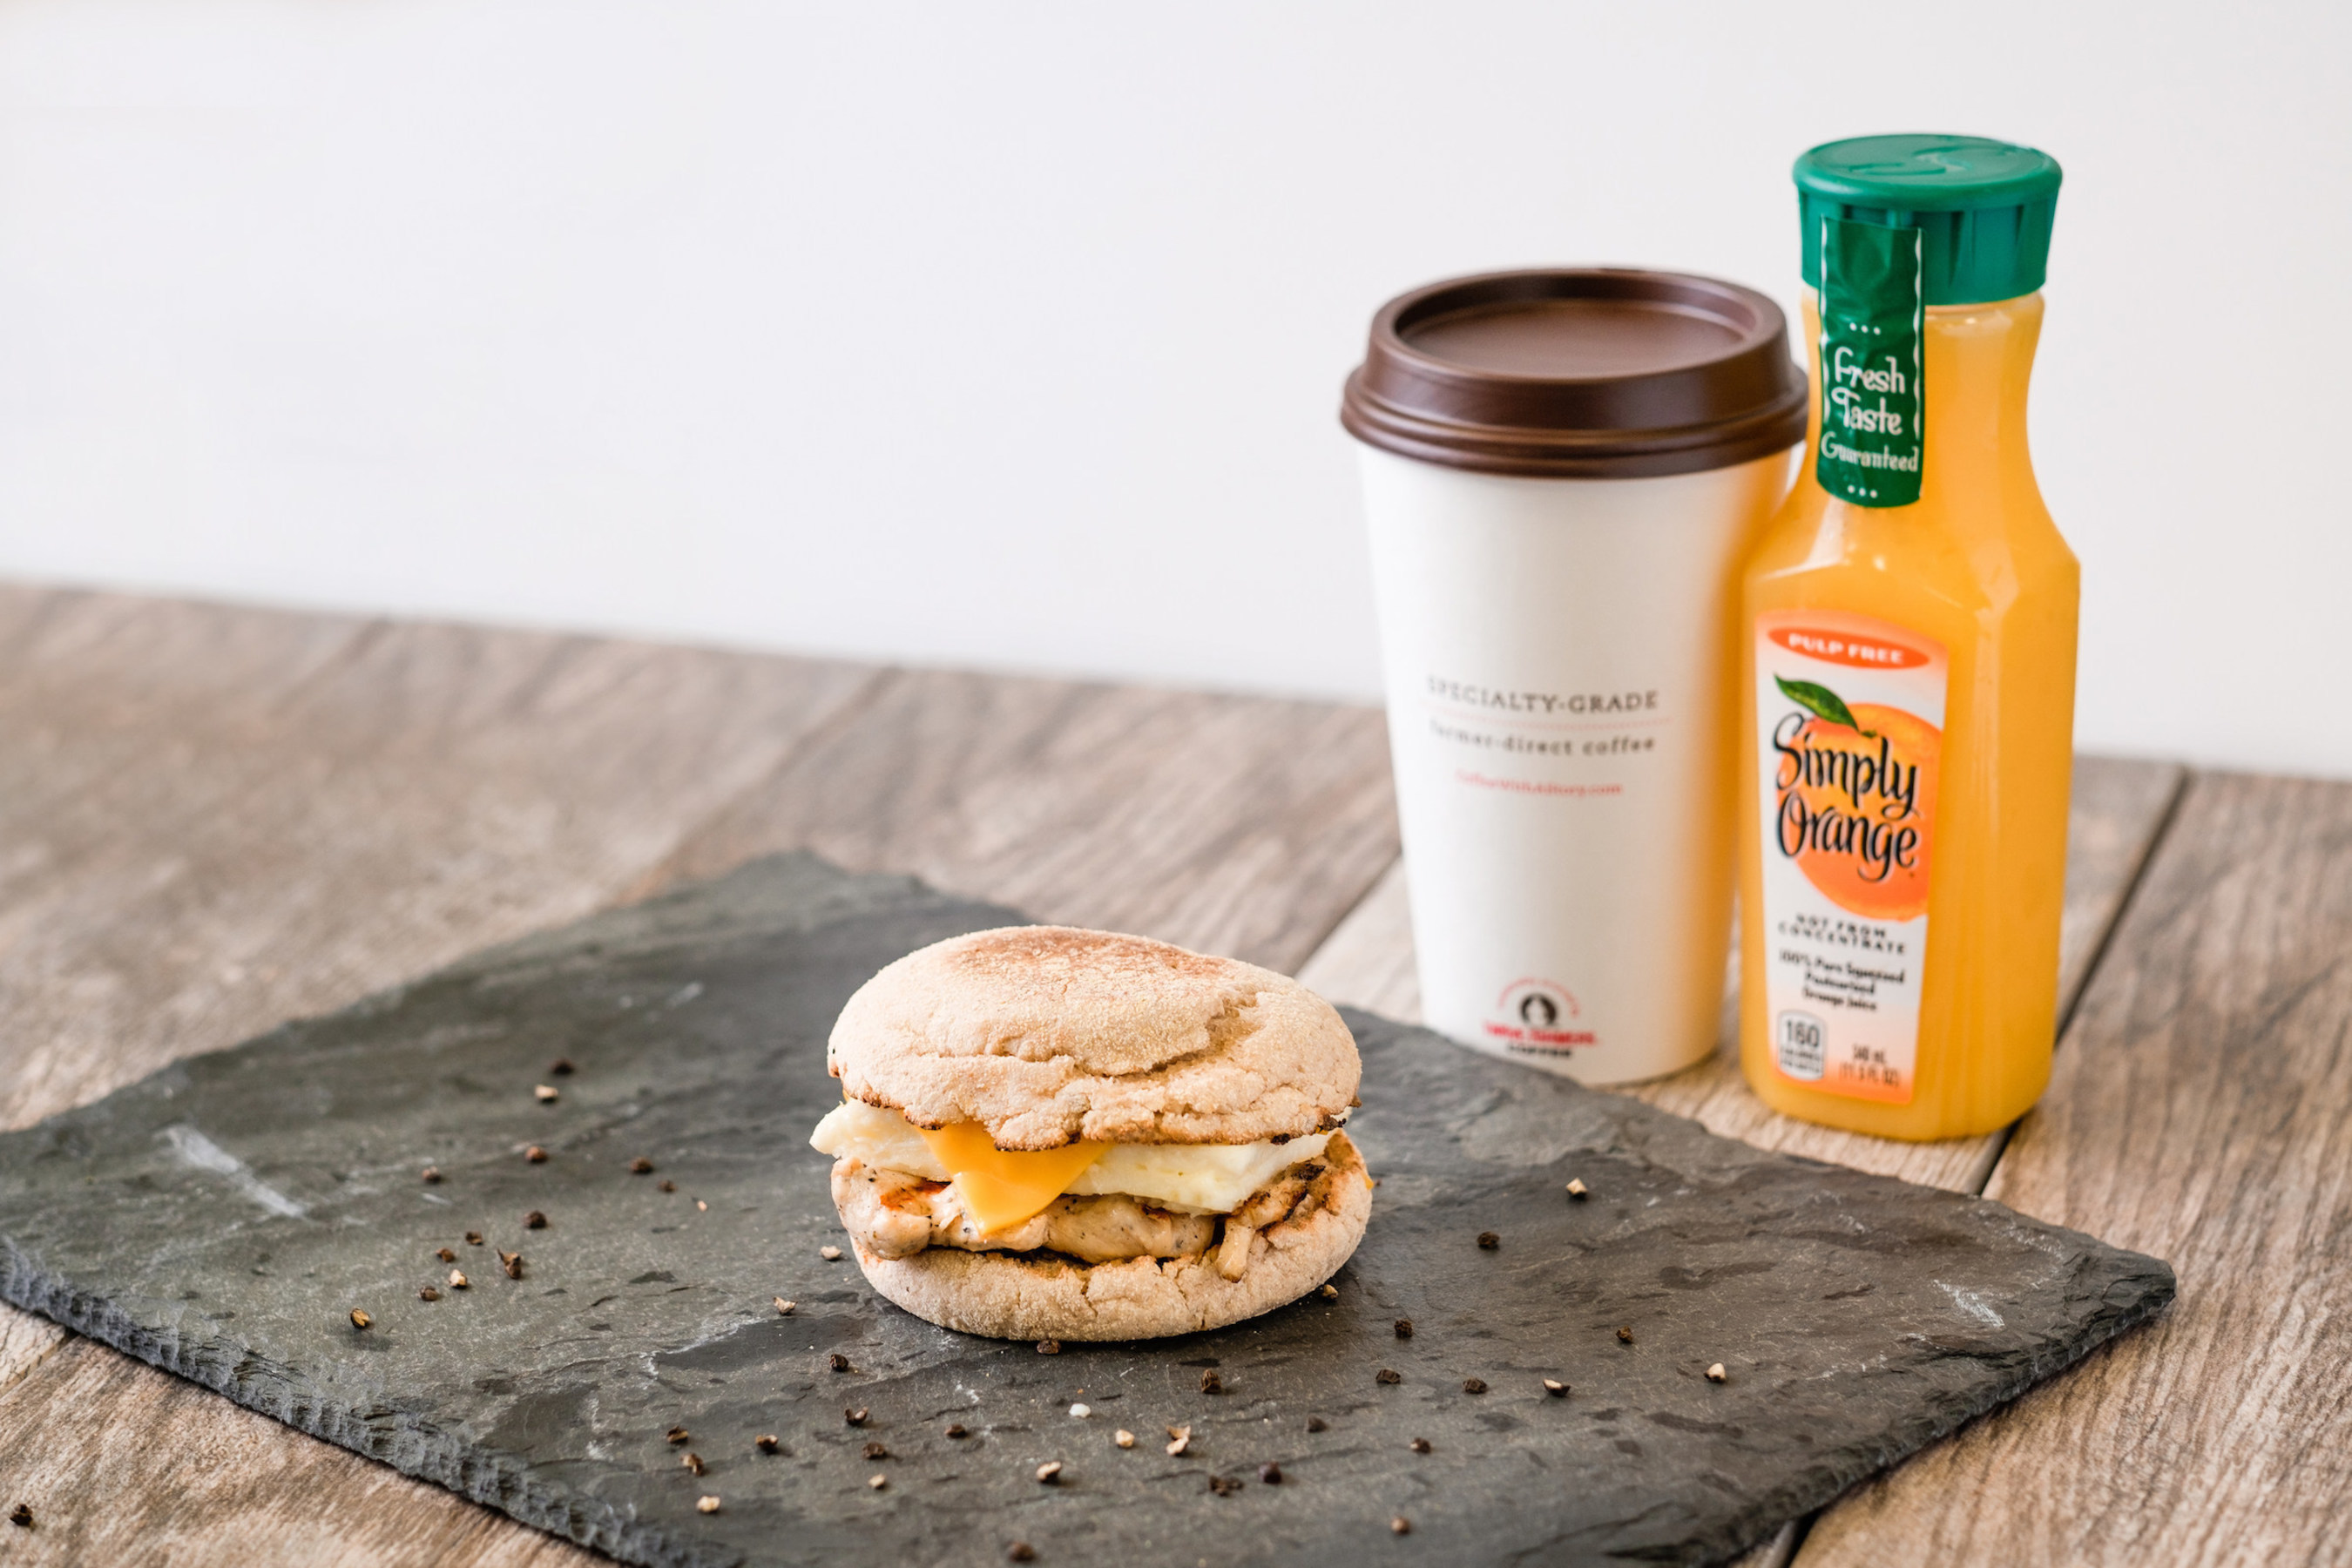 Chick-fil-A launches new Egg White Grill breakfast sandwich nationwide on July 18.